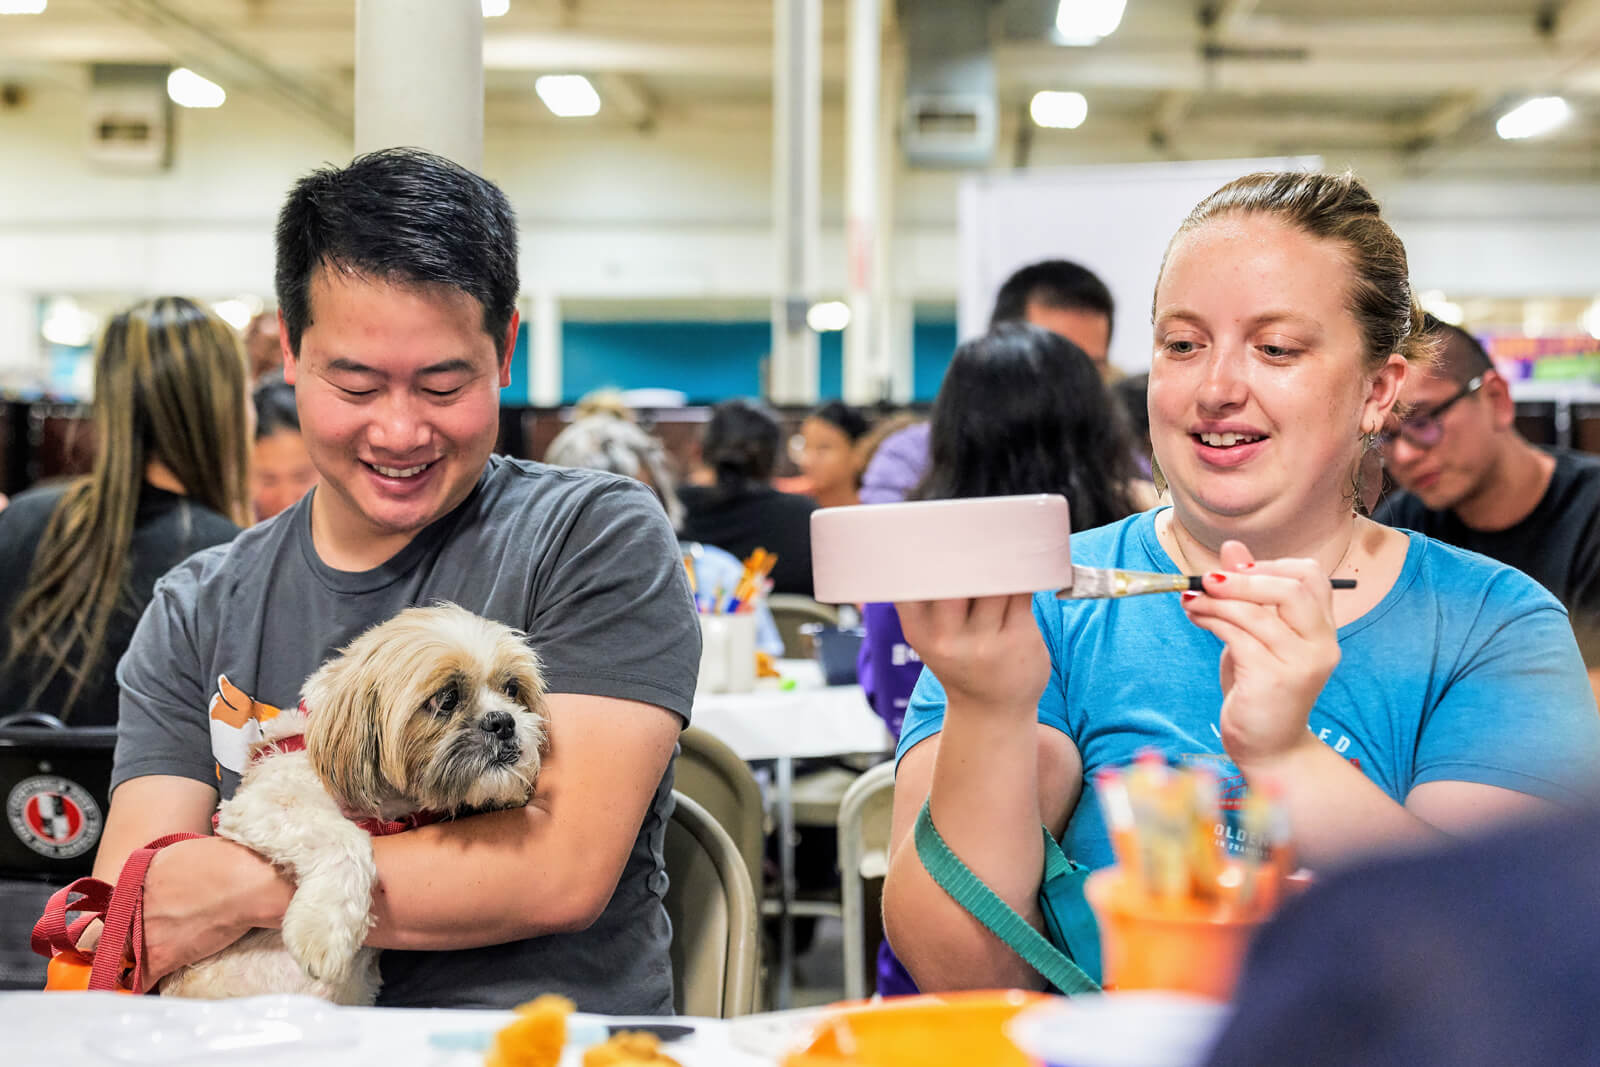 Sip and paint event people with dog painting dog bowl